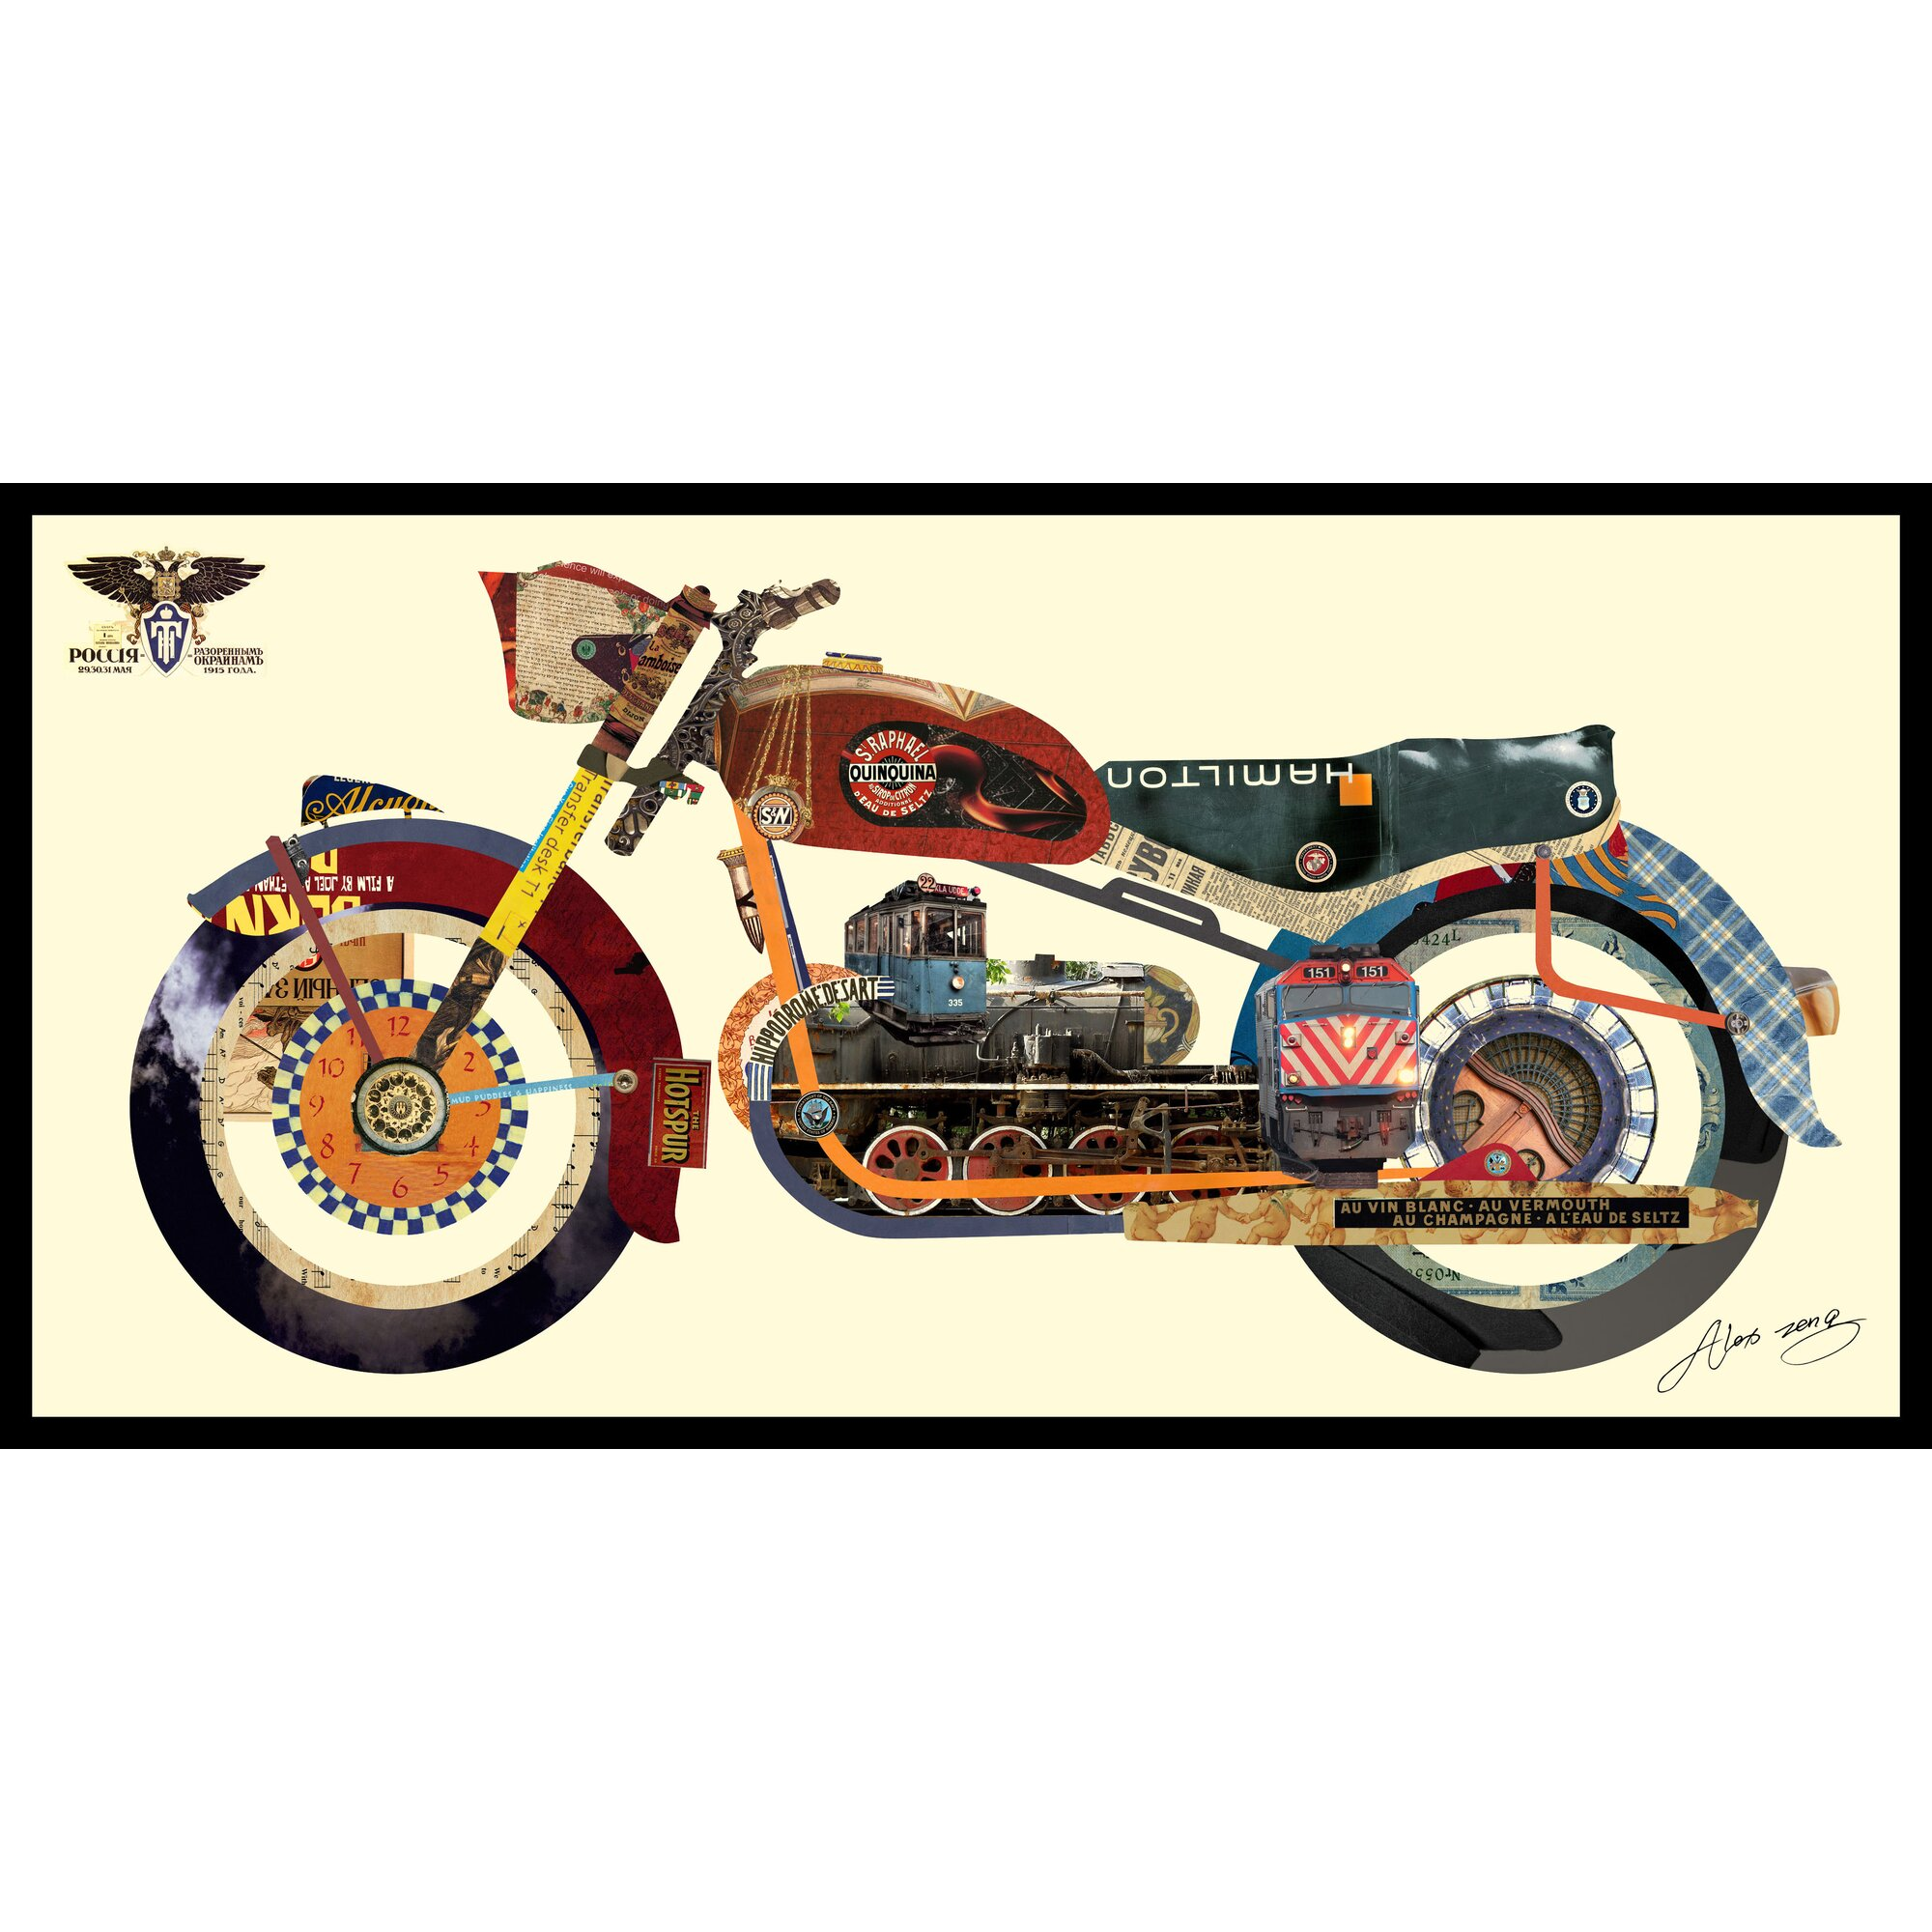 Harley color carpet tiles - Holy Harley Motorcycle Dimensional Collage Hand Signed By Alex Zeng Framed Graphic Art